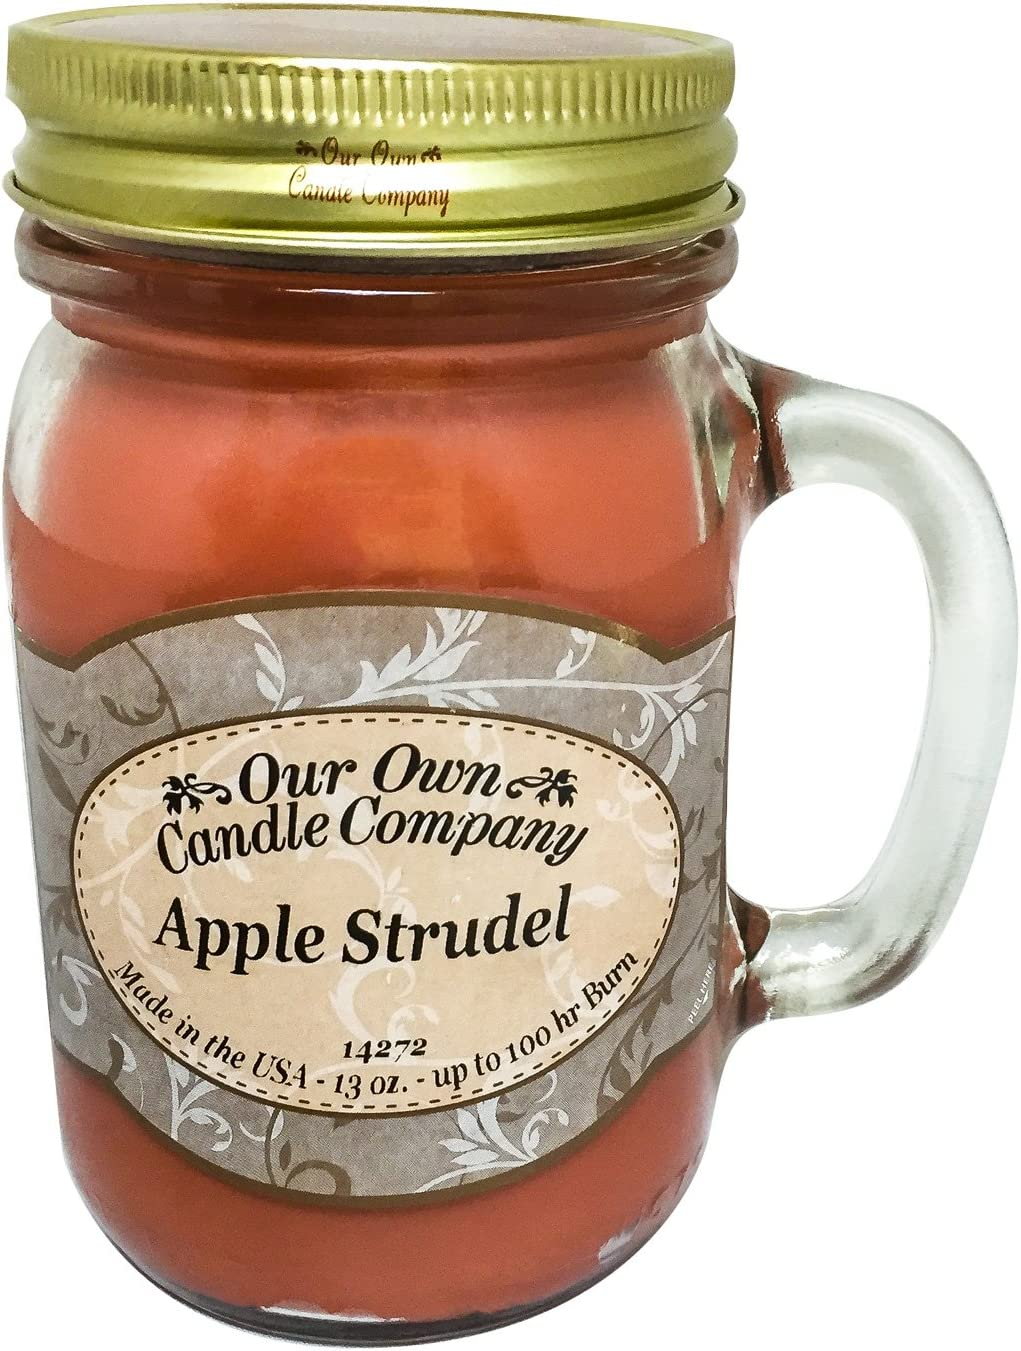 Our Own Candle Company Apple Strudel Scented 13 Ounce Mason Jar Candle